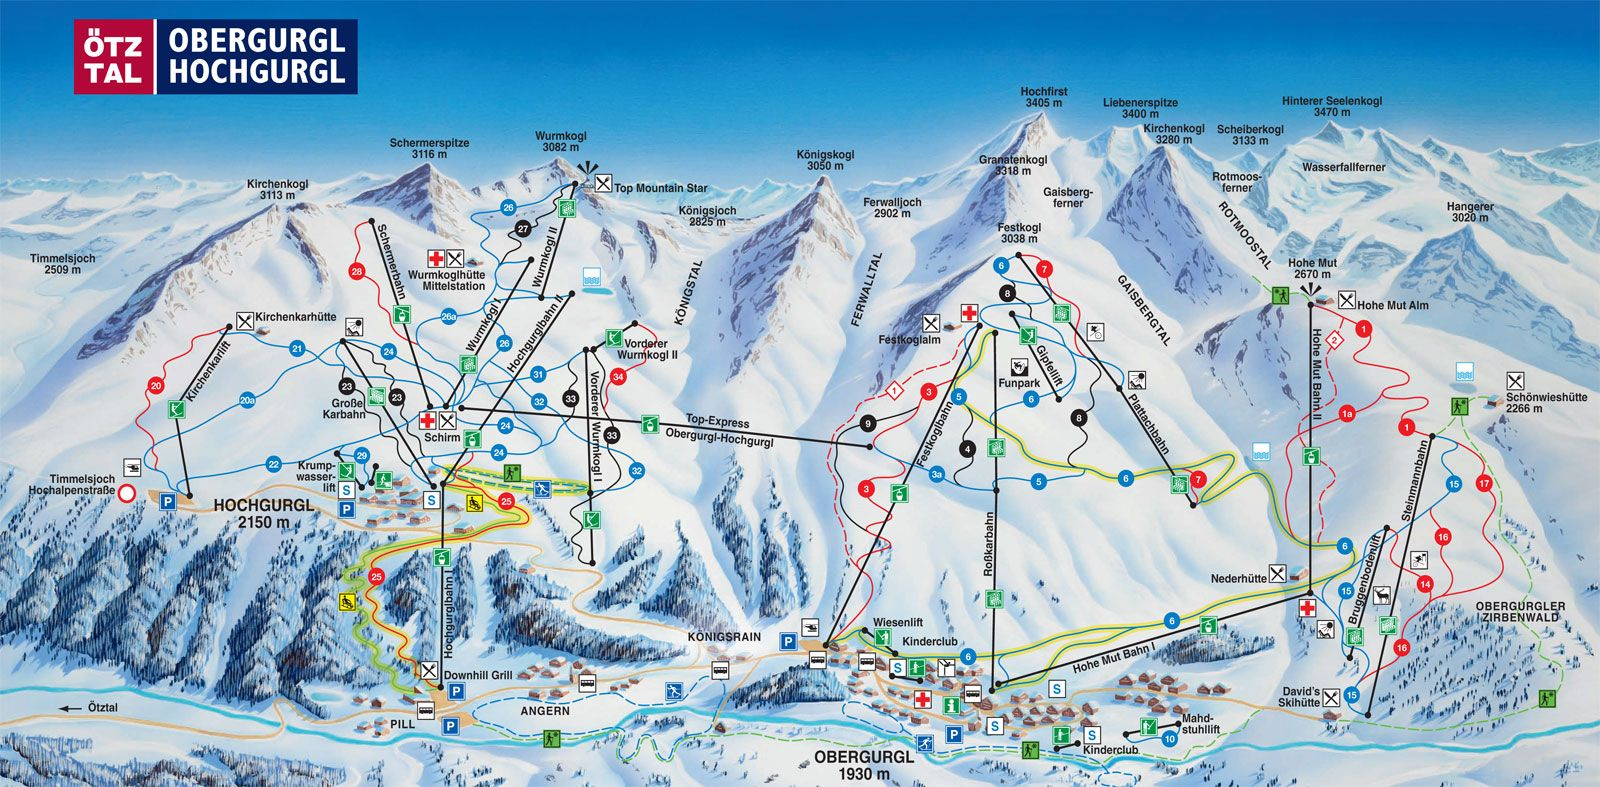 Map of Obergurgl-Hochgurgl pistes